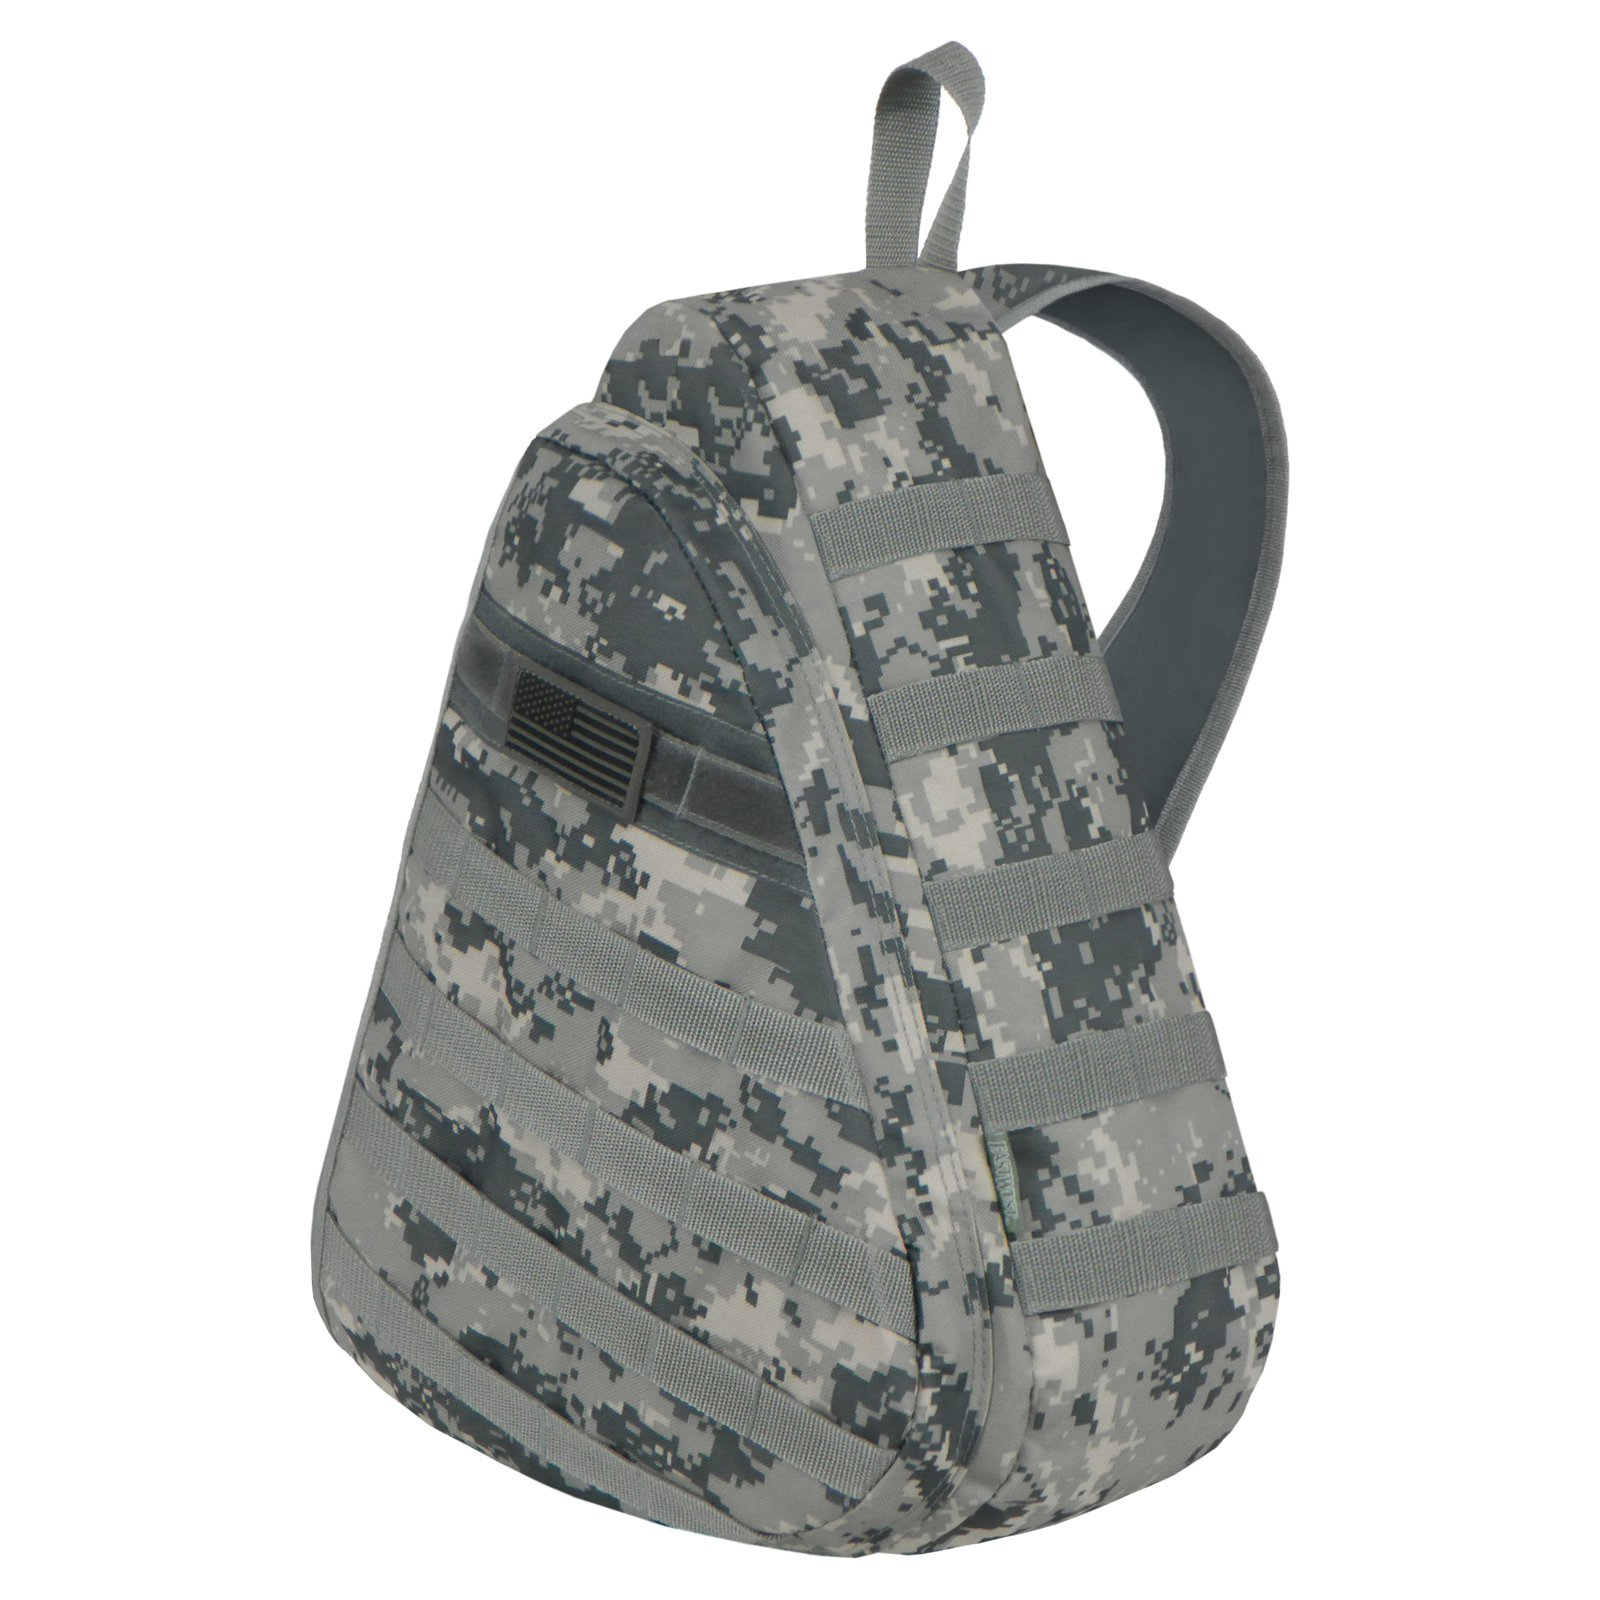 East West U.S.A. Tactical Molle ACU Sling Backpack